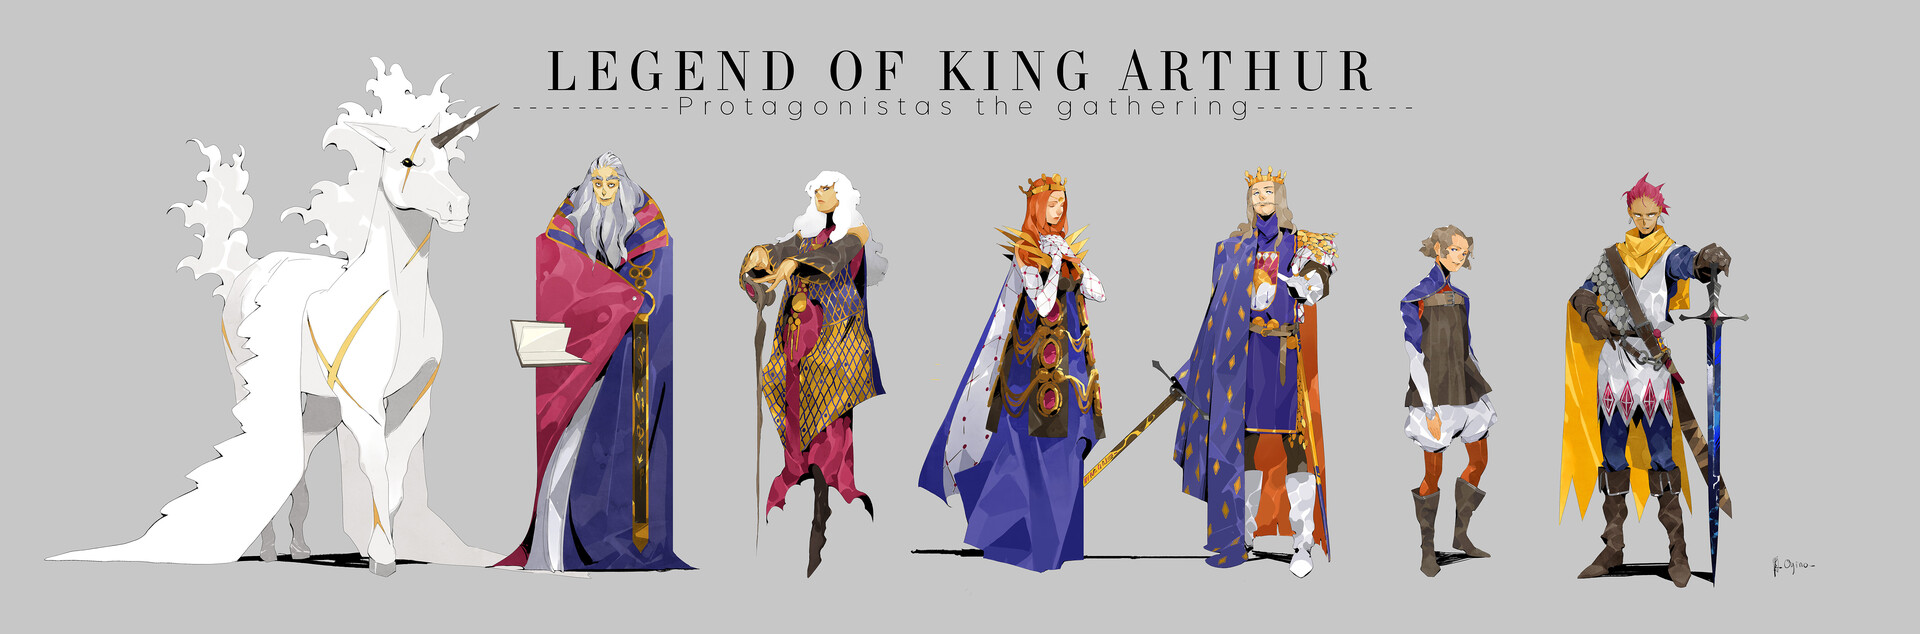 Boell oyino legend of king arthur challenge lineup